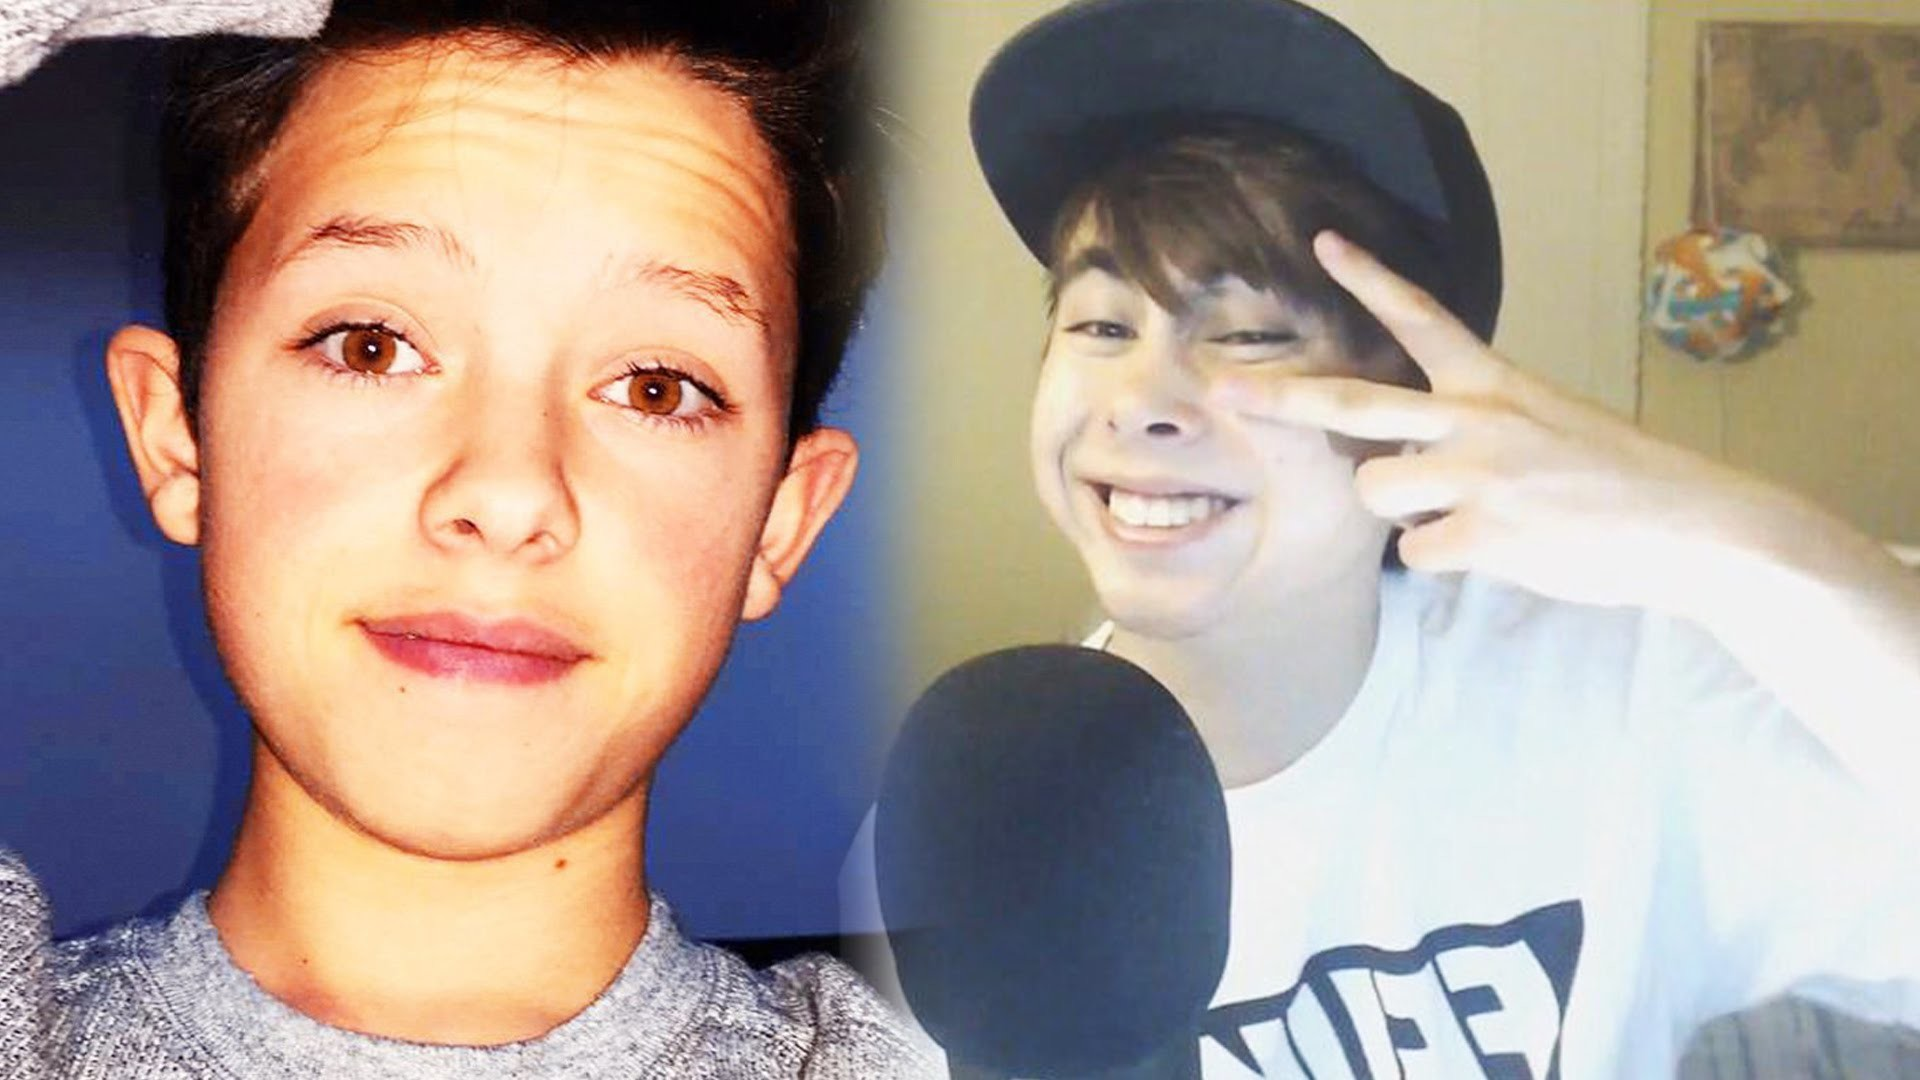 1920x1080 Leafy & Jacob Sartorius HACKED! YouTuber EXPOSED Himself - KSI, MattyBRaps,  SSSniperWolf, PewDiePie - YouTube